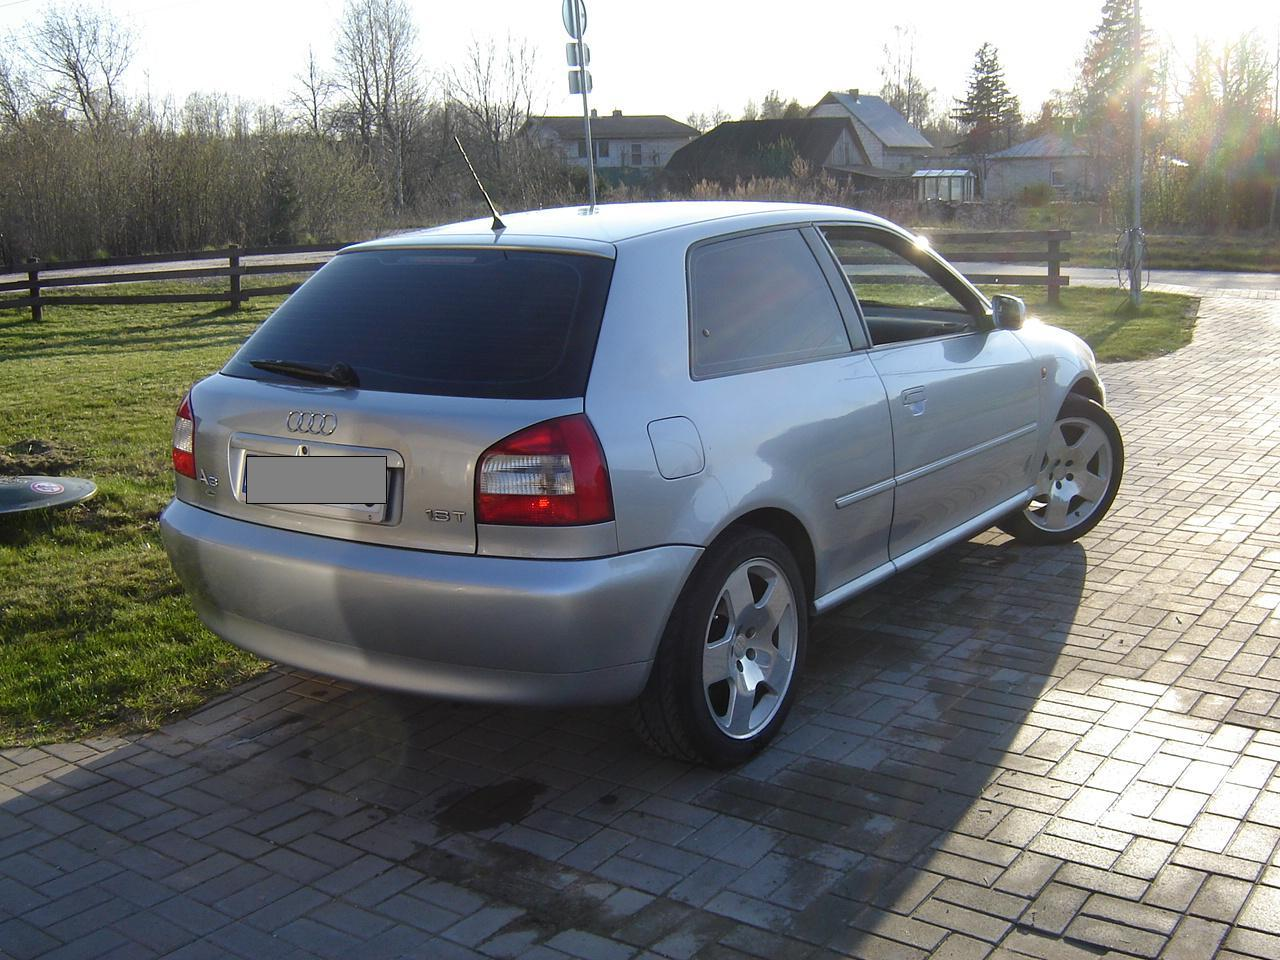 Audi A3 0 60 >> AndreAudiA3 1999 Audi A3 Specs, Photos, Modification Info ...